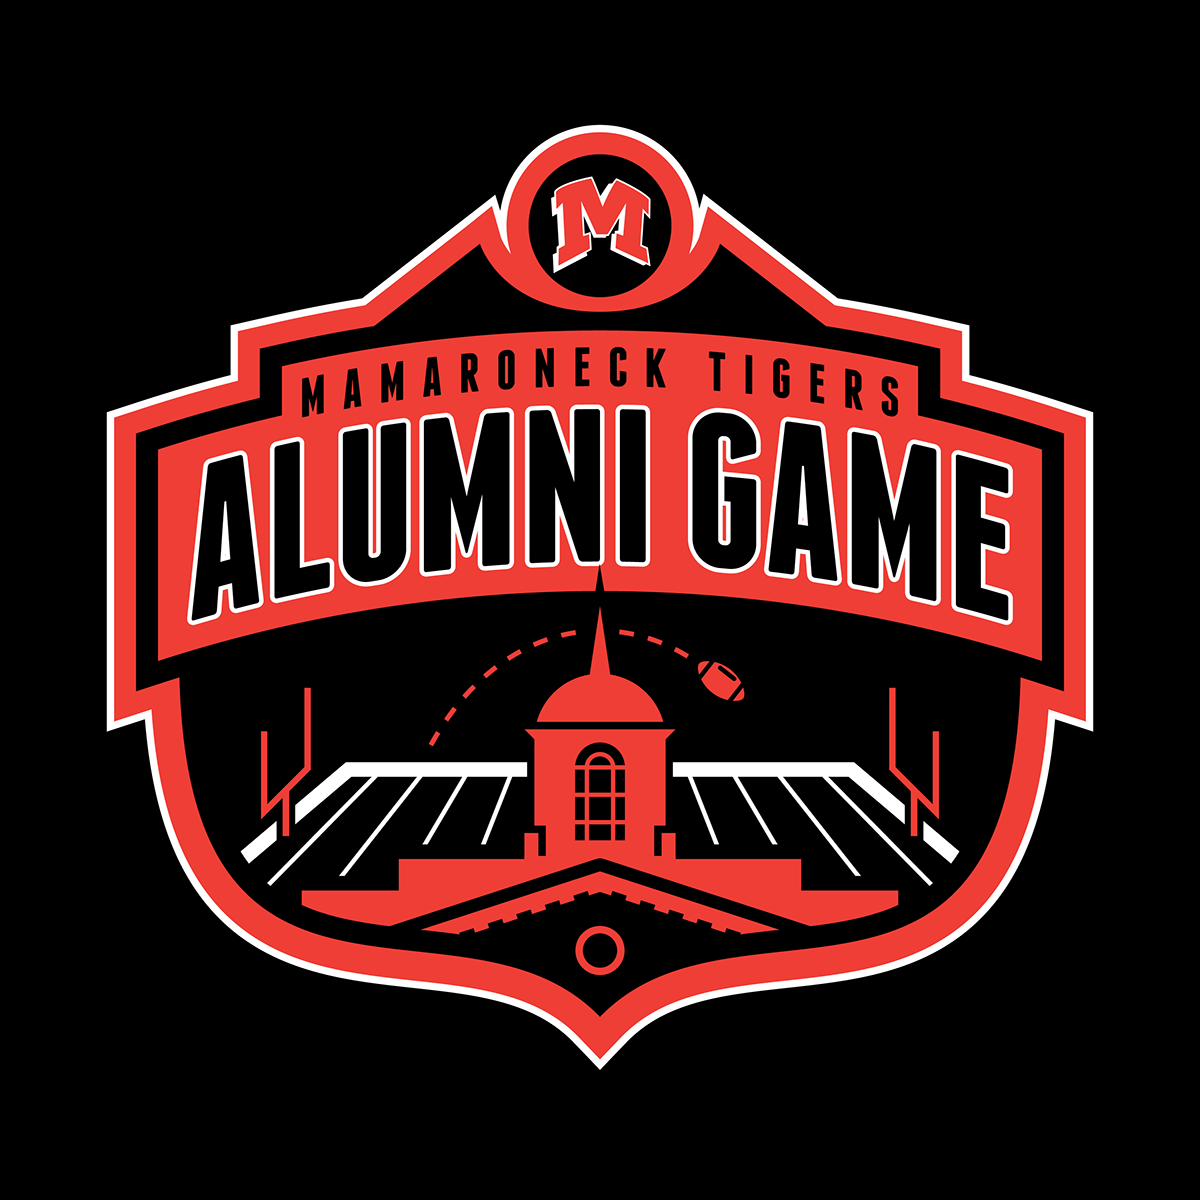 Alumni Game Logo